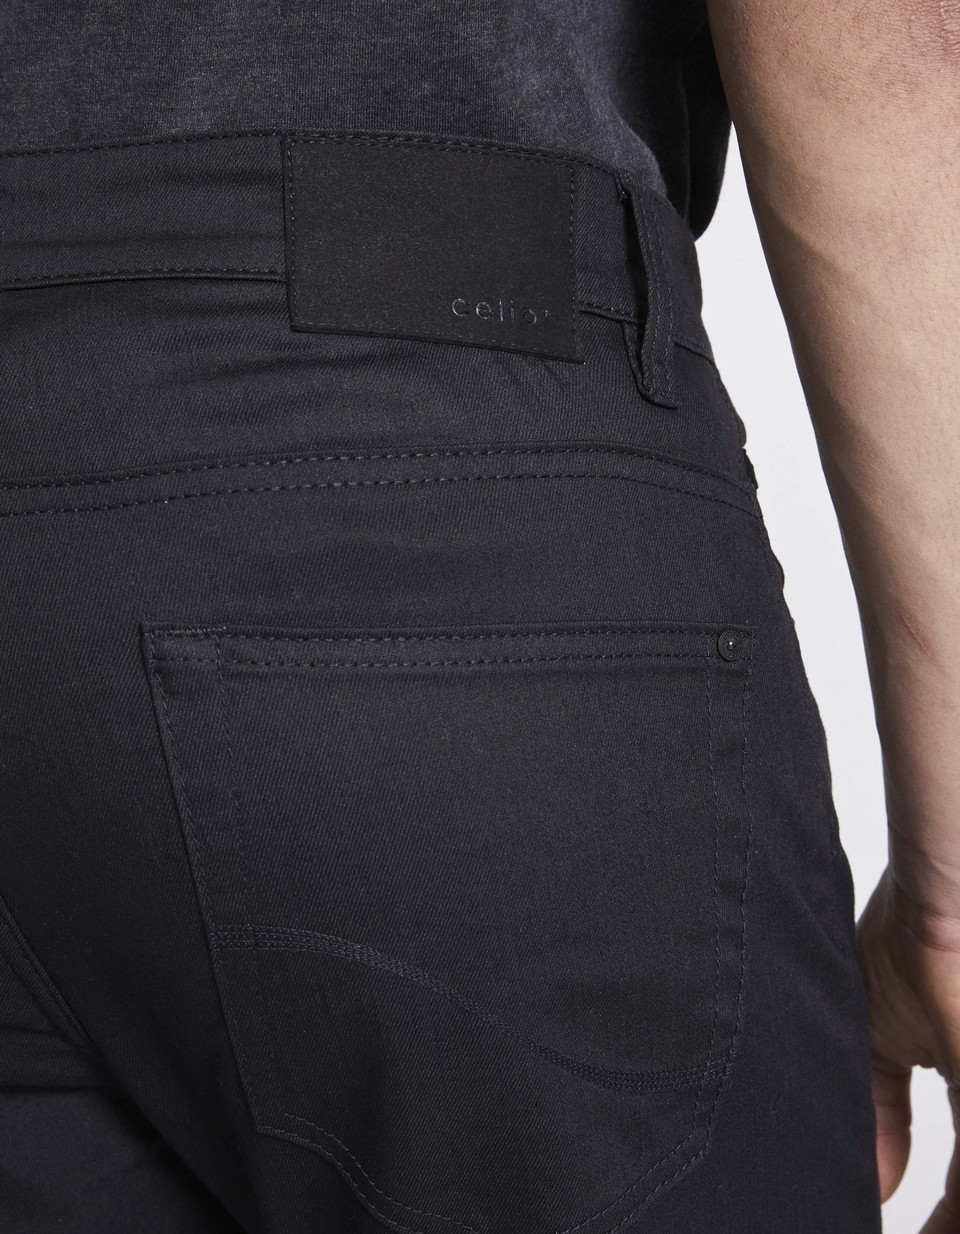 fast delivery no sale tax reasonable price jeans regular C5*